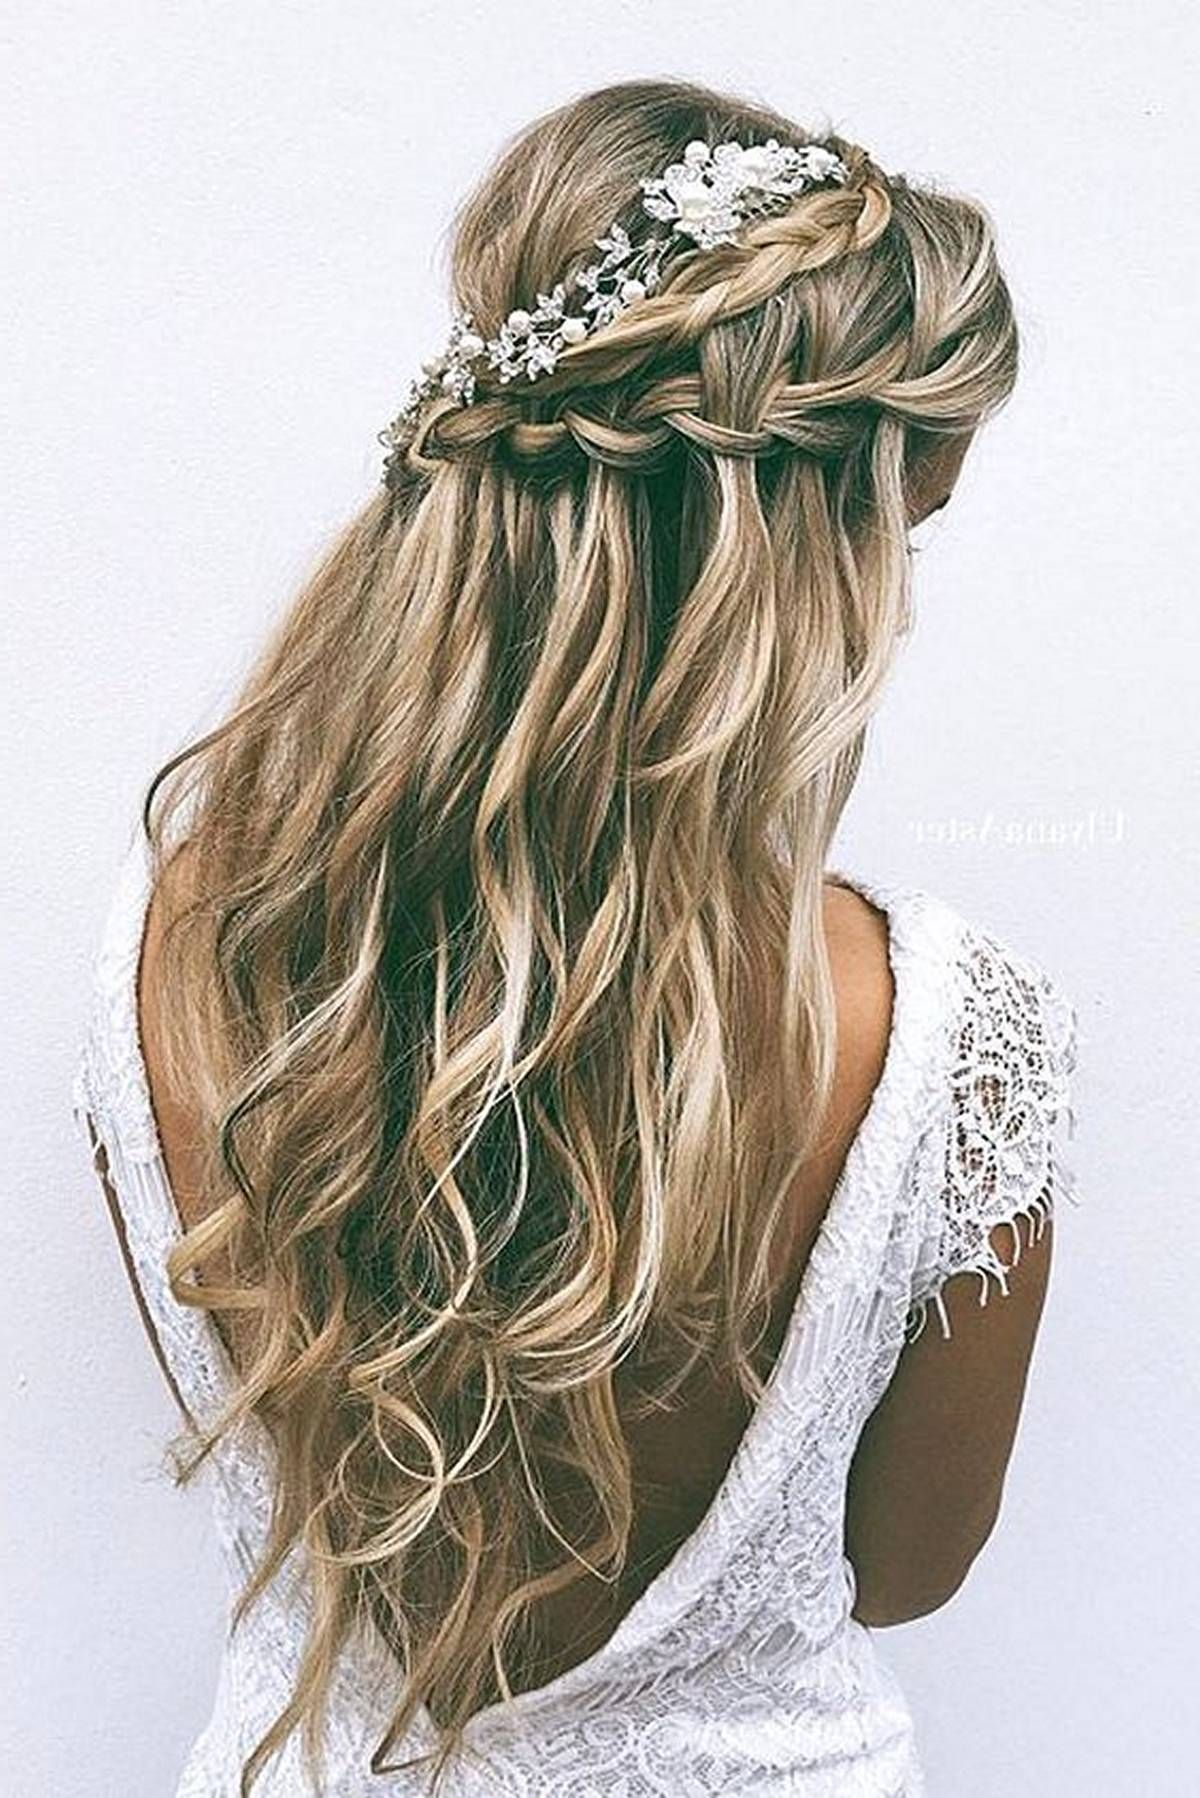 210 Hairstyles Diy And Tutorial For All Hair Lengths Dressfitme Wedding Hairstyles For Long Hair Bride Hairstyles Long Hair Styles